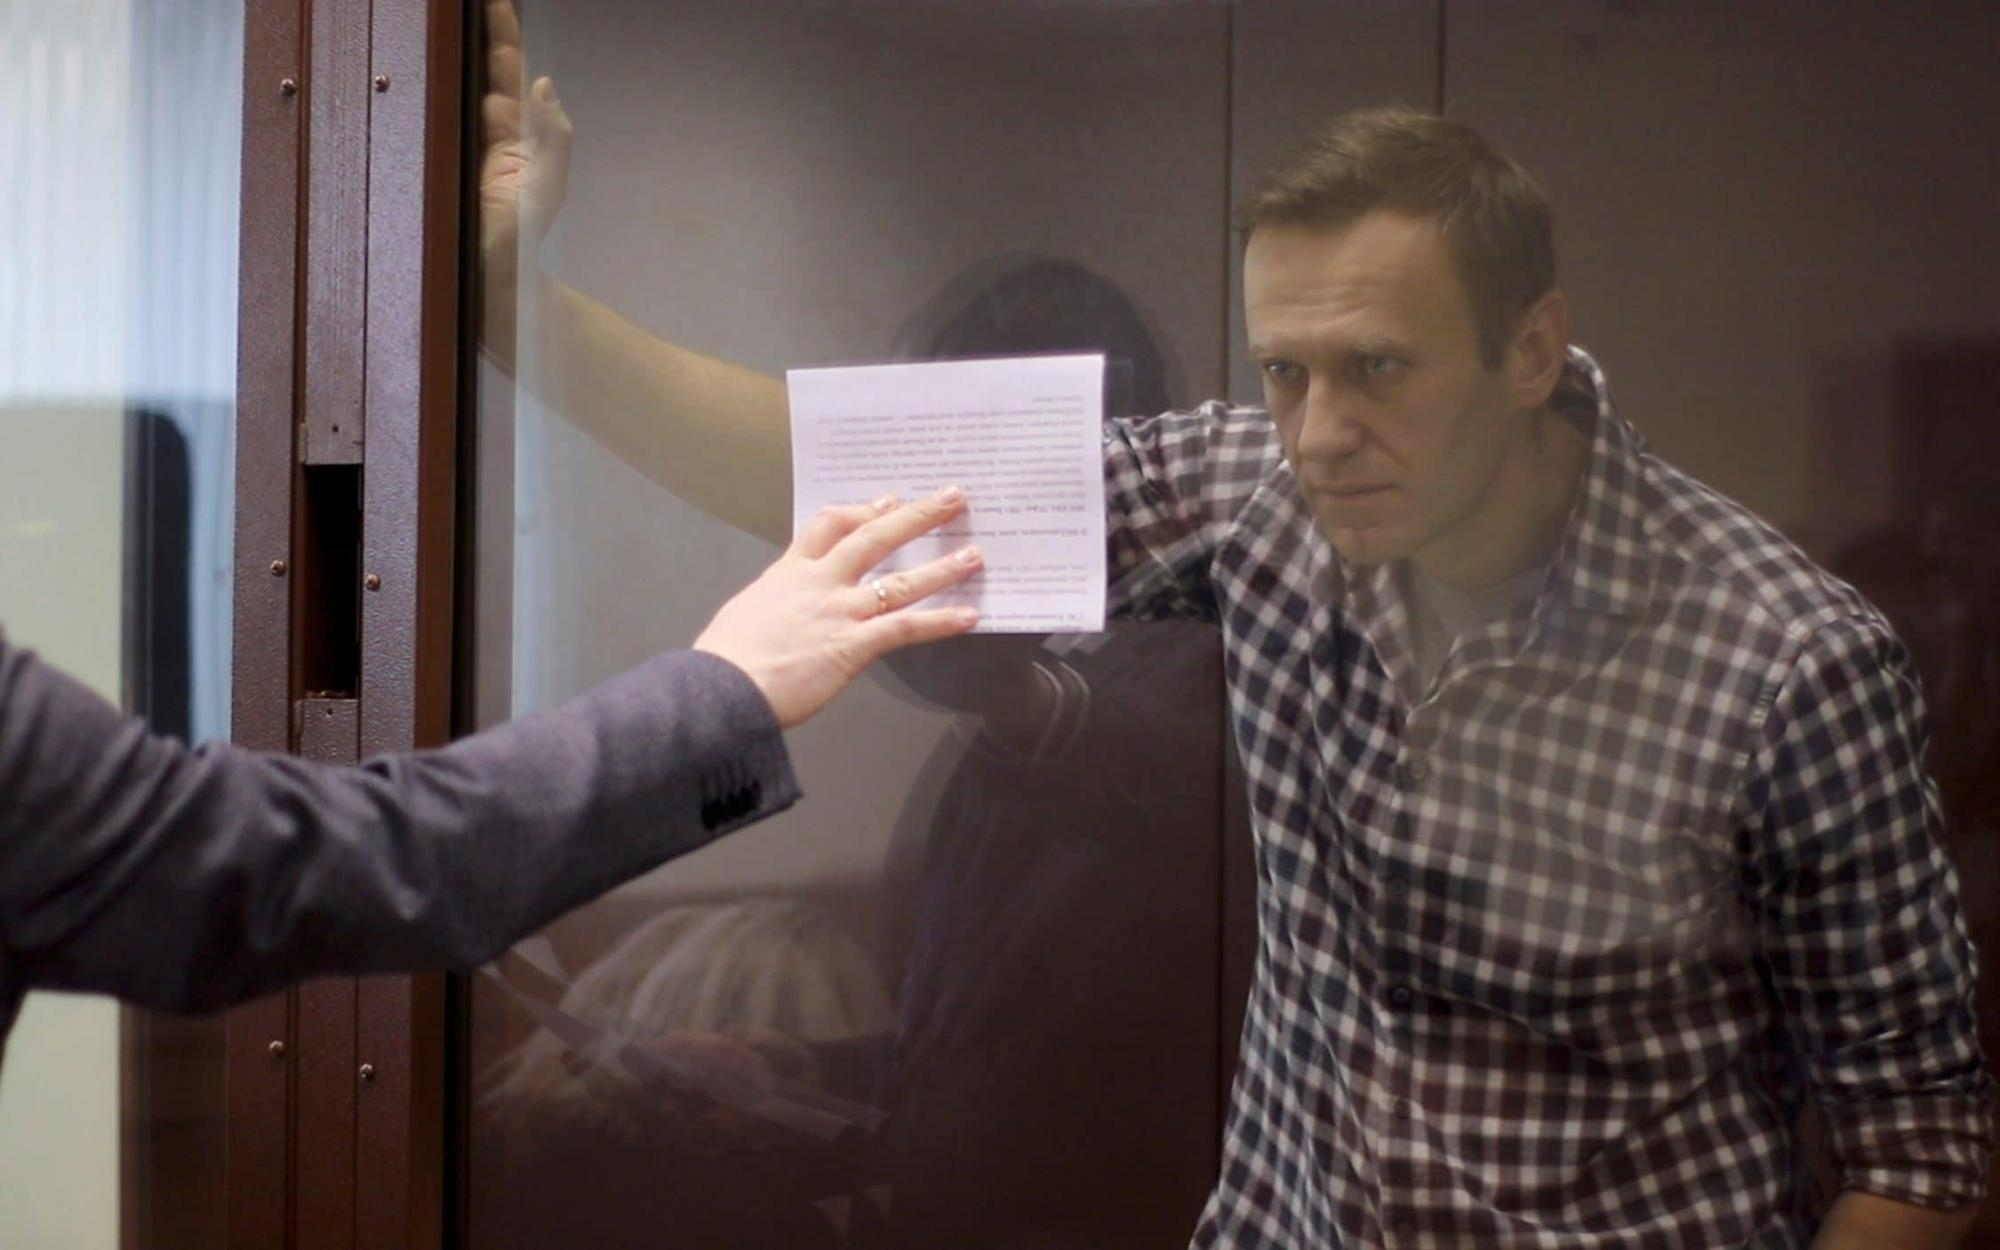 EU to impose sanctions against Russia for jailing opposition leader Alexei Navalny